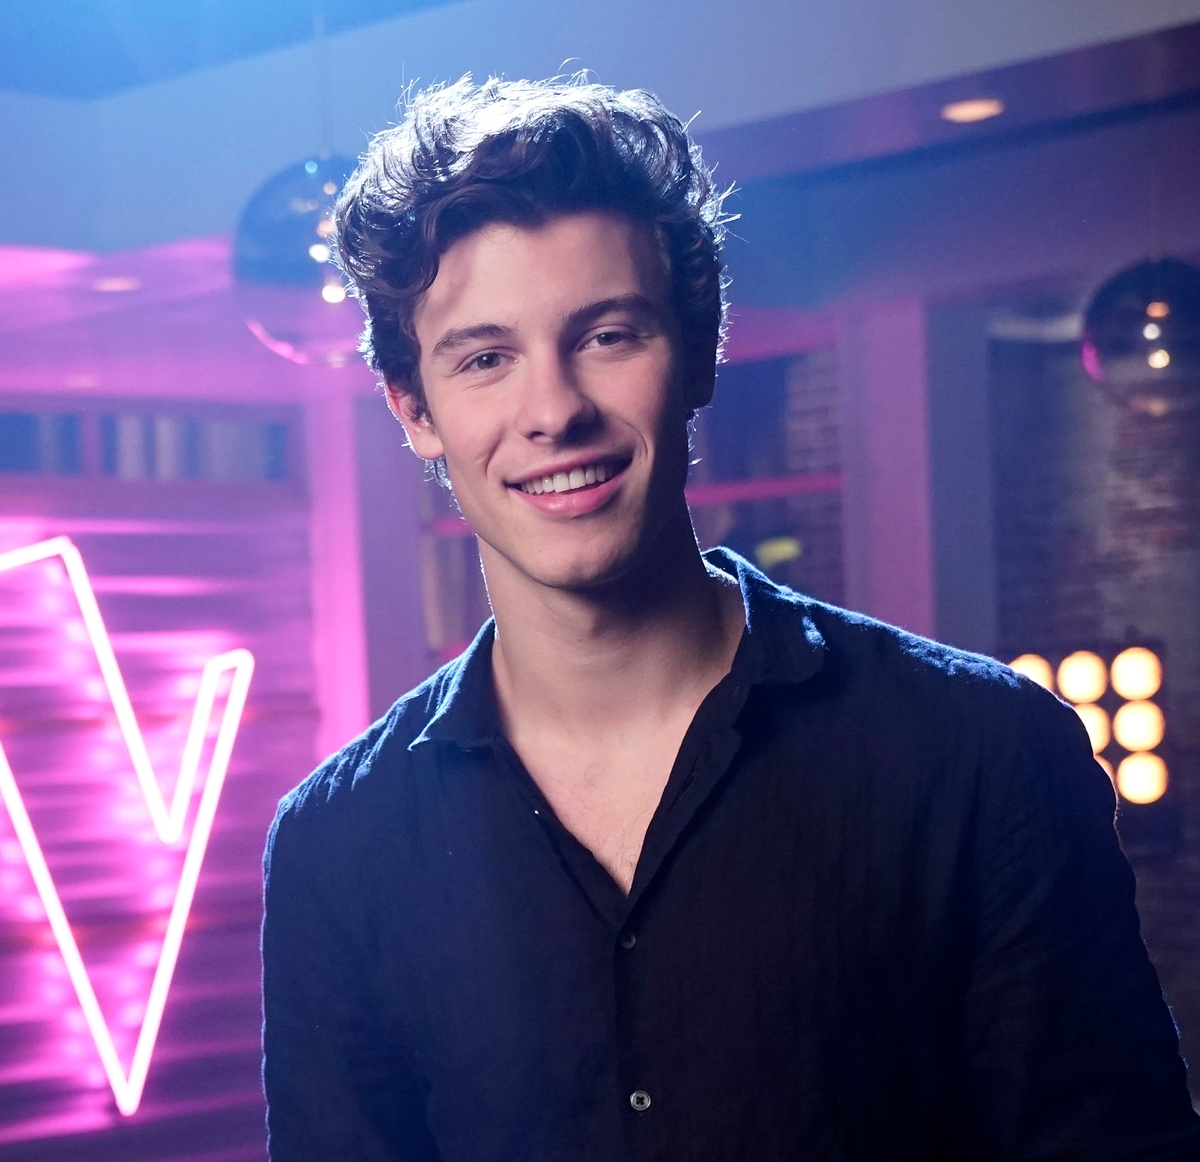 Shawn Mendes Girlfriend: A Breakdown of the Singer's Love Life